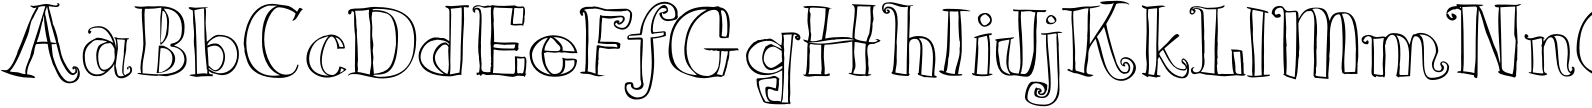 Blue Goblet Serif Outline Reg